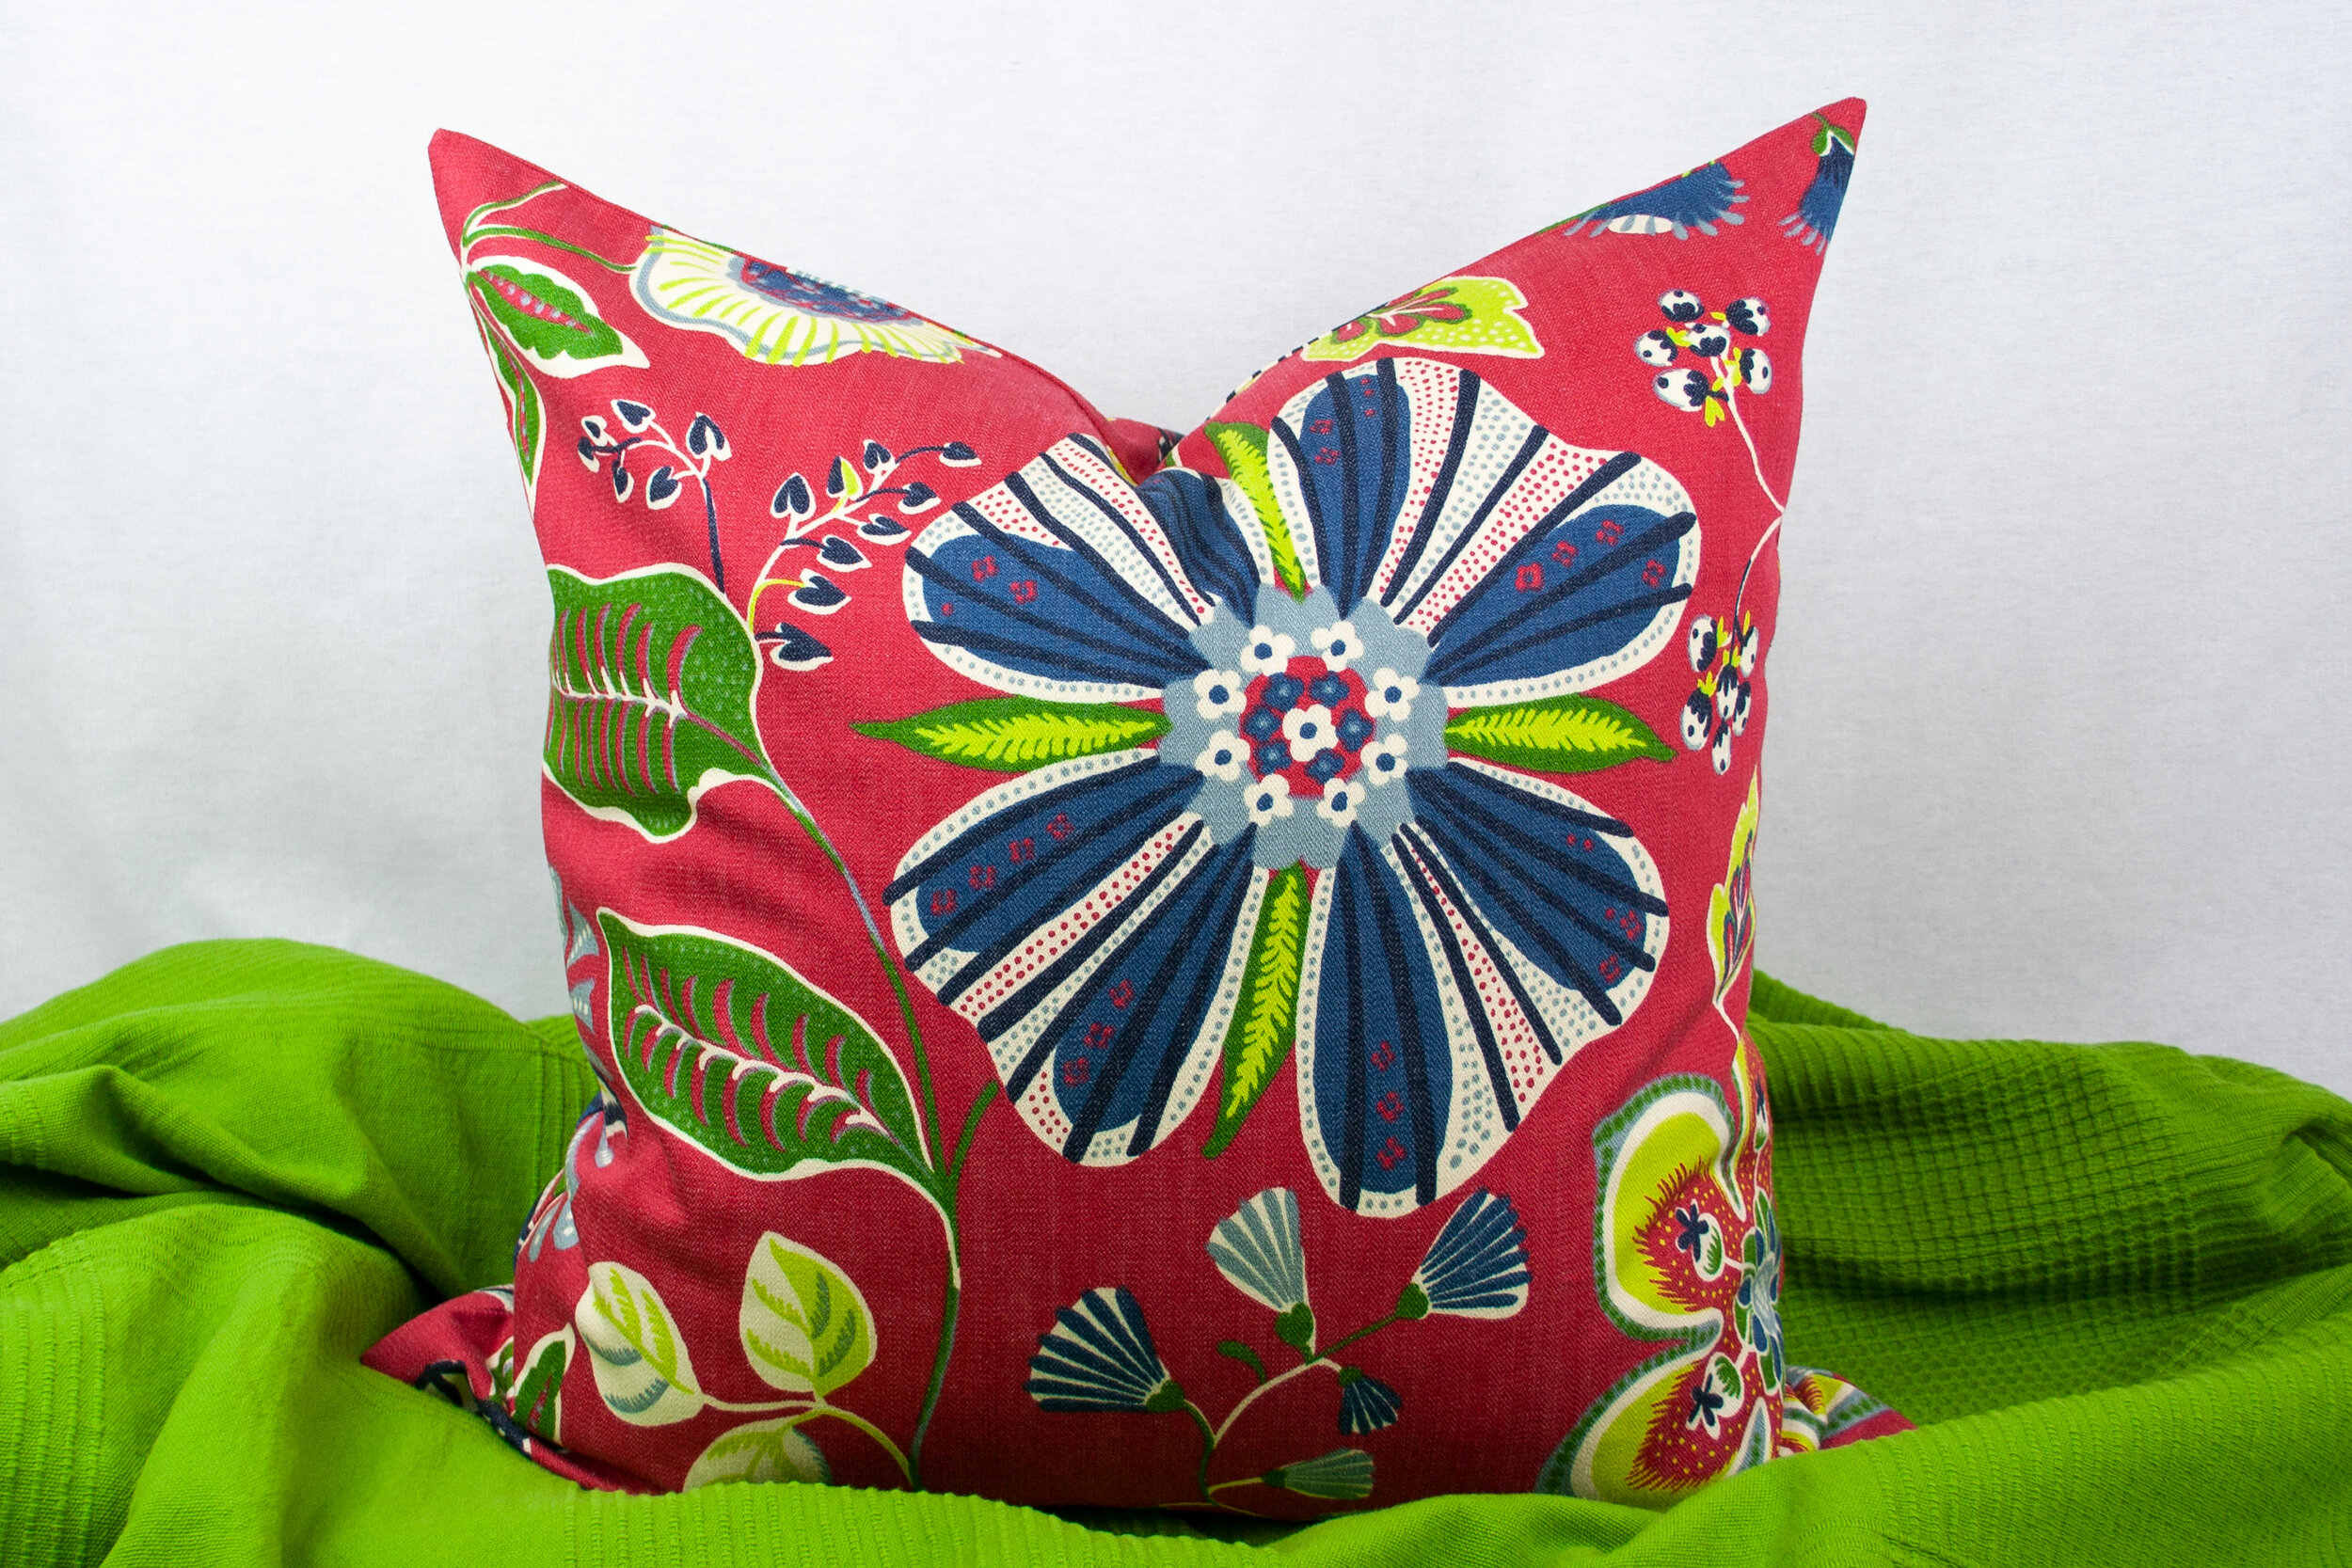 20 X 20 Inch Red Navy Blue And Green Floral Pillow Cover Sew